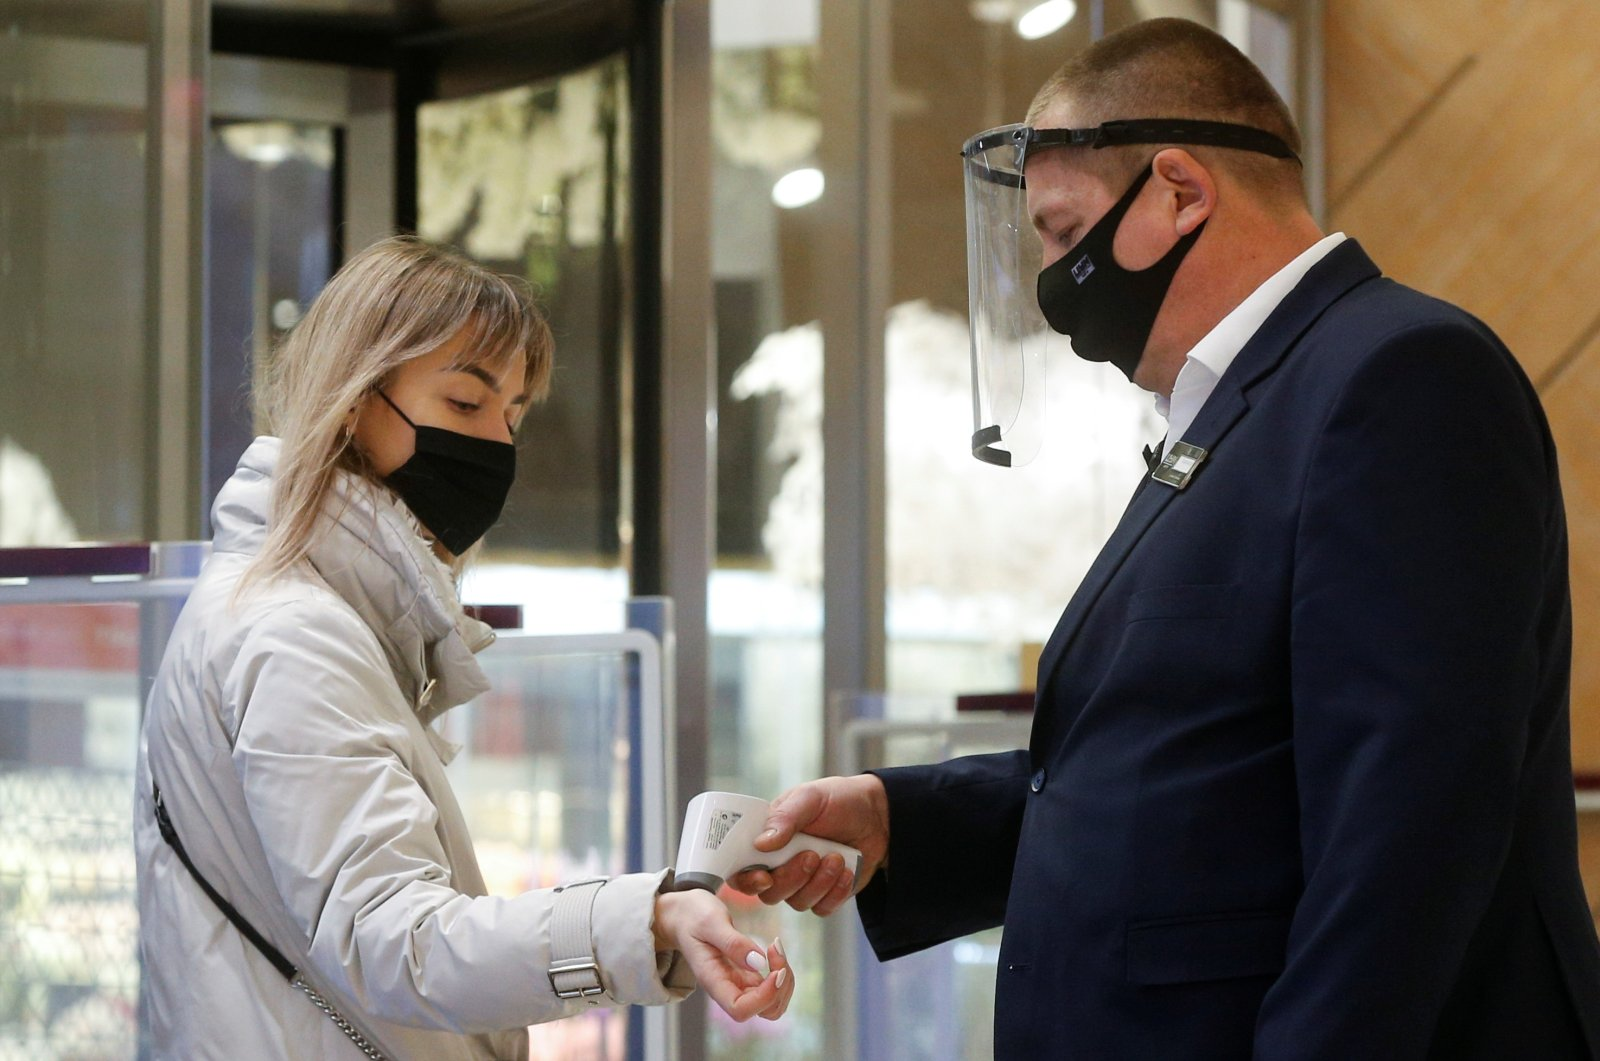 An employee wearing a mask and face shield checks the body temperature of a visitor at the Central Universal Department Store (TsUM), on the first day after ending a coronavirus lockdown, in Kyiv, Ukraine, Jan. 25, 2021. (Reuters Photo)